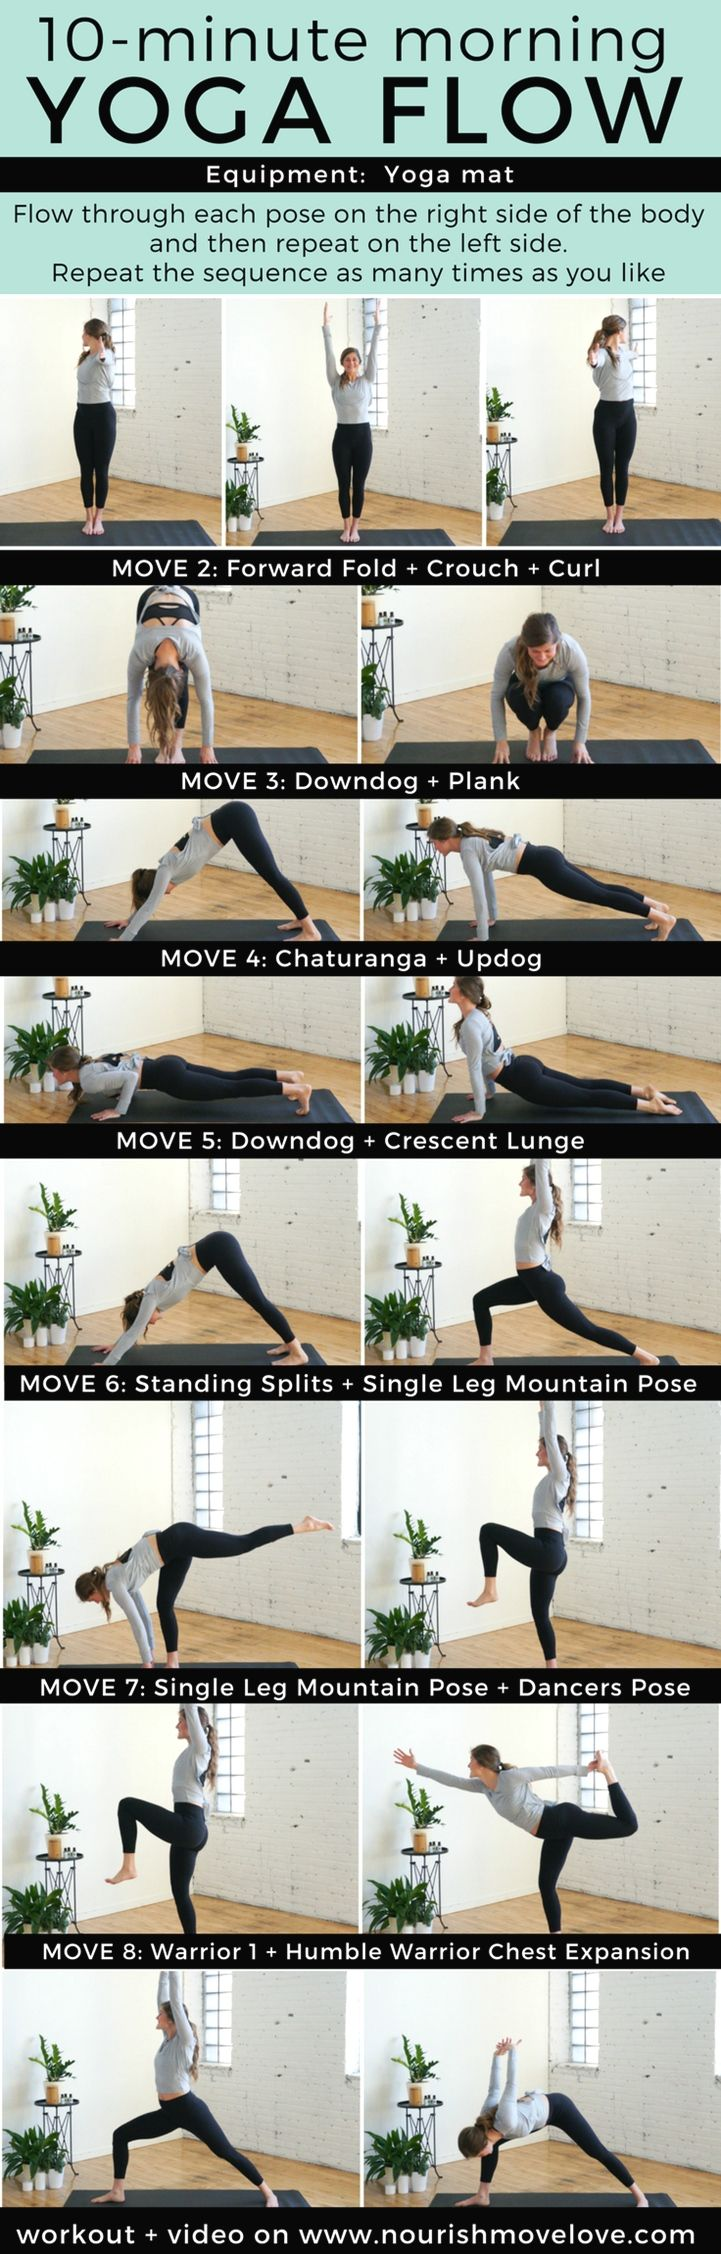 The Important Role Of Yoga In Digestive System Morning Yoga Flow Morning Yoga 10 Minute Morning Yoga